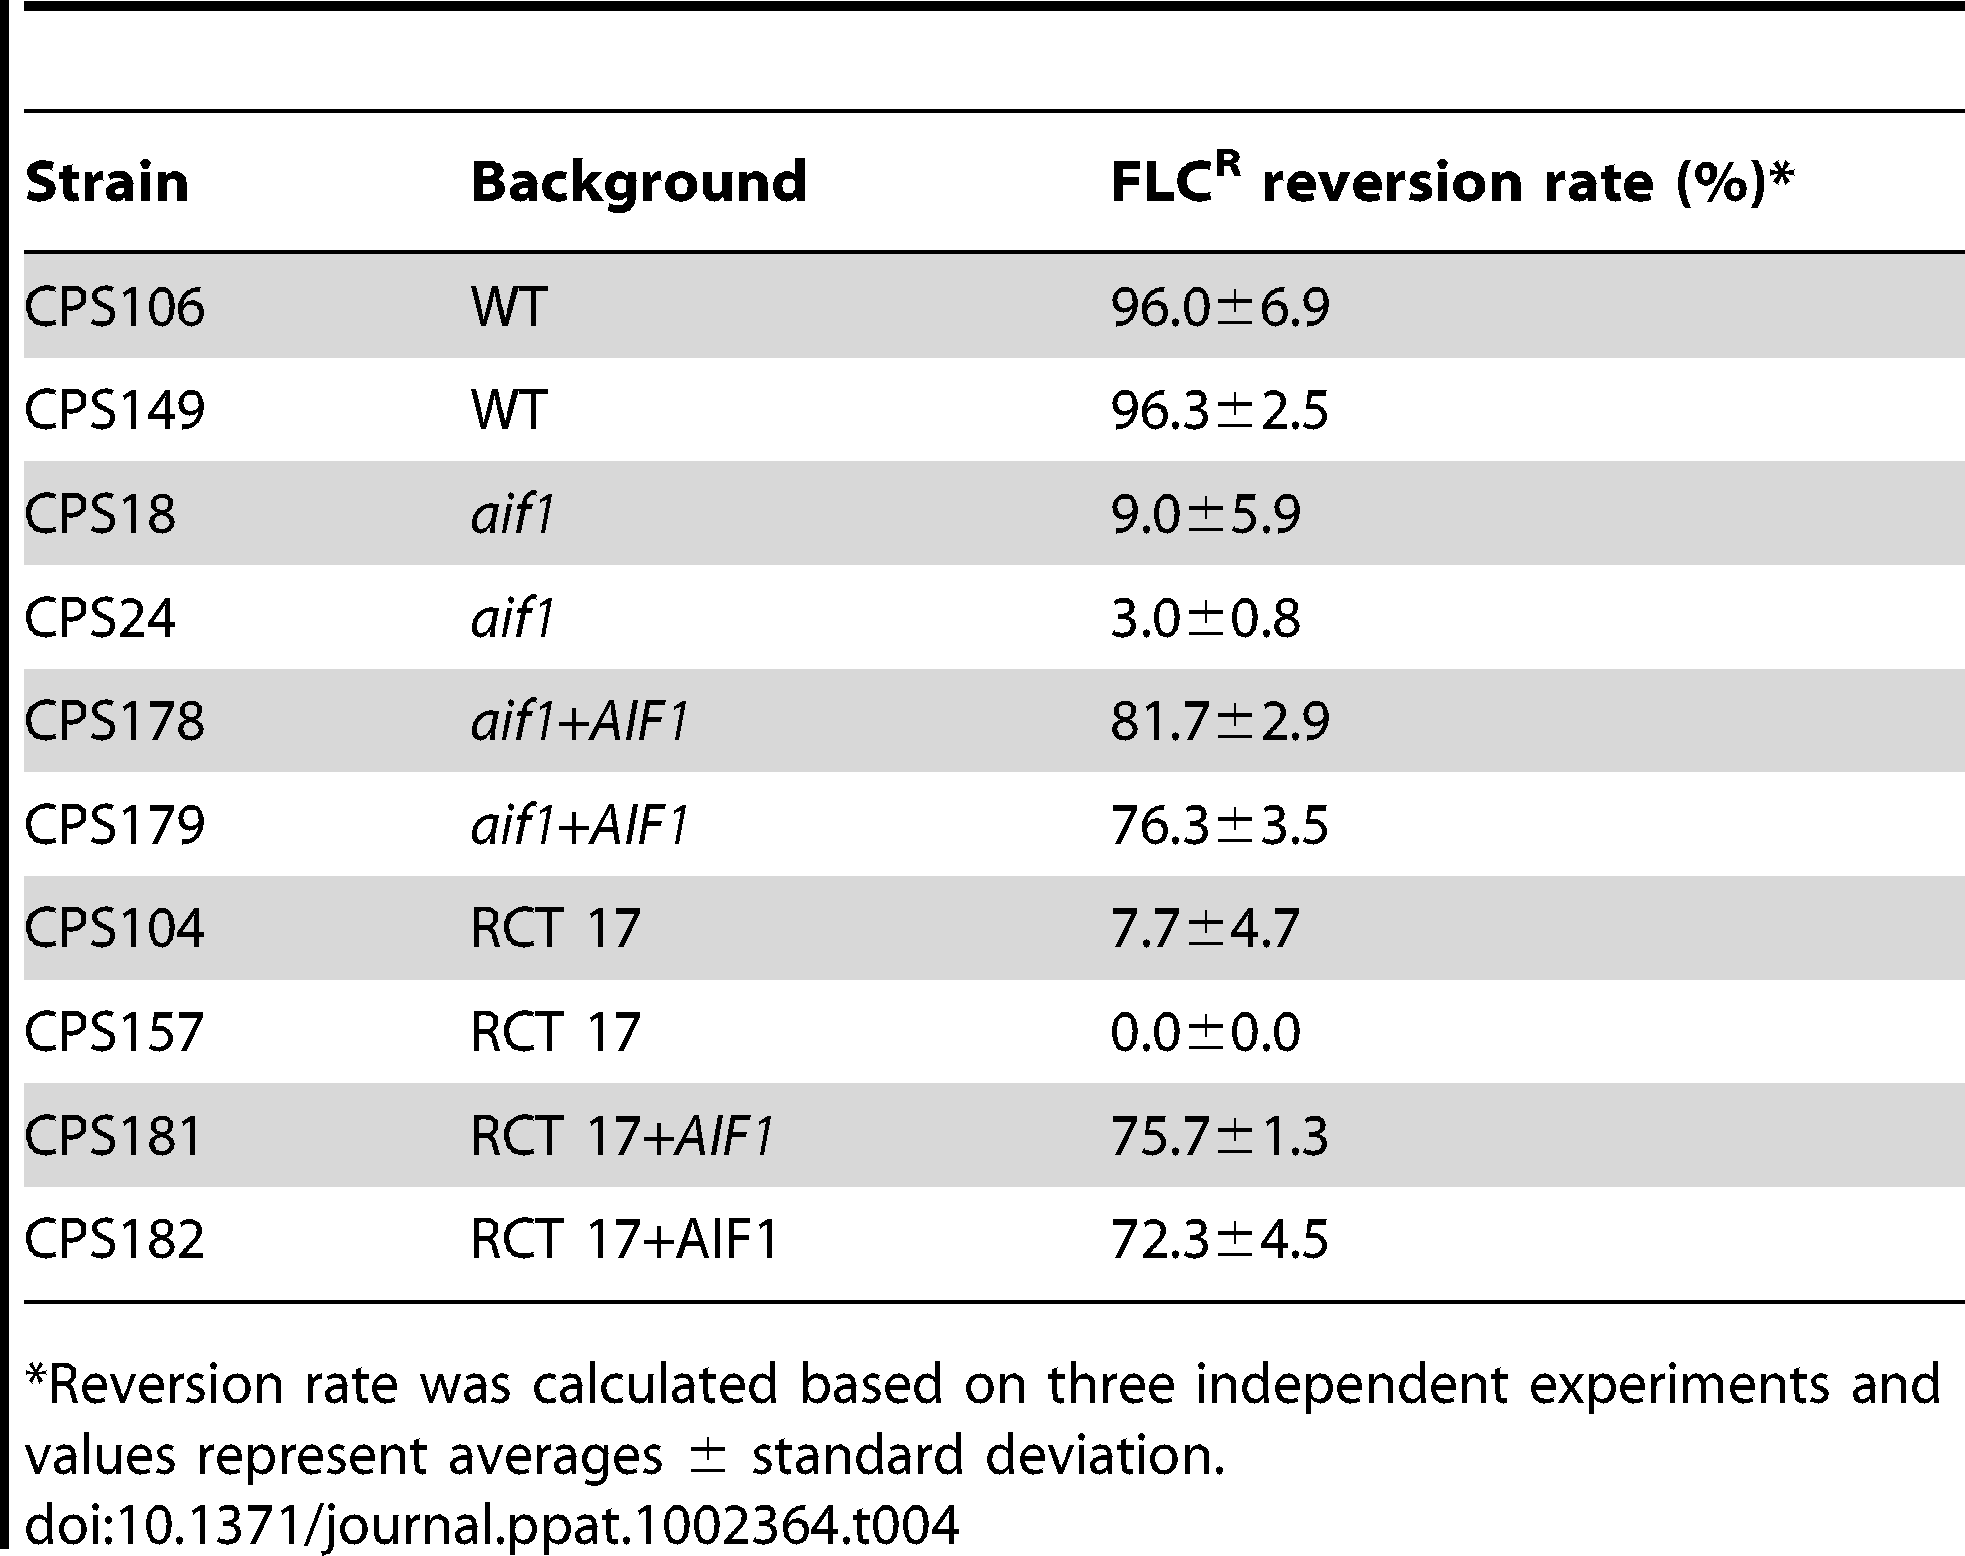 Reversion rates of resistance to FLC after 20 generations